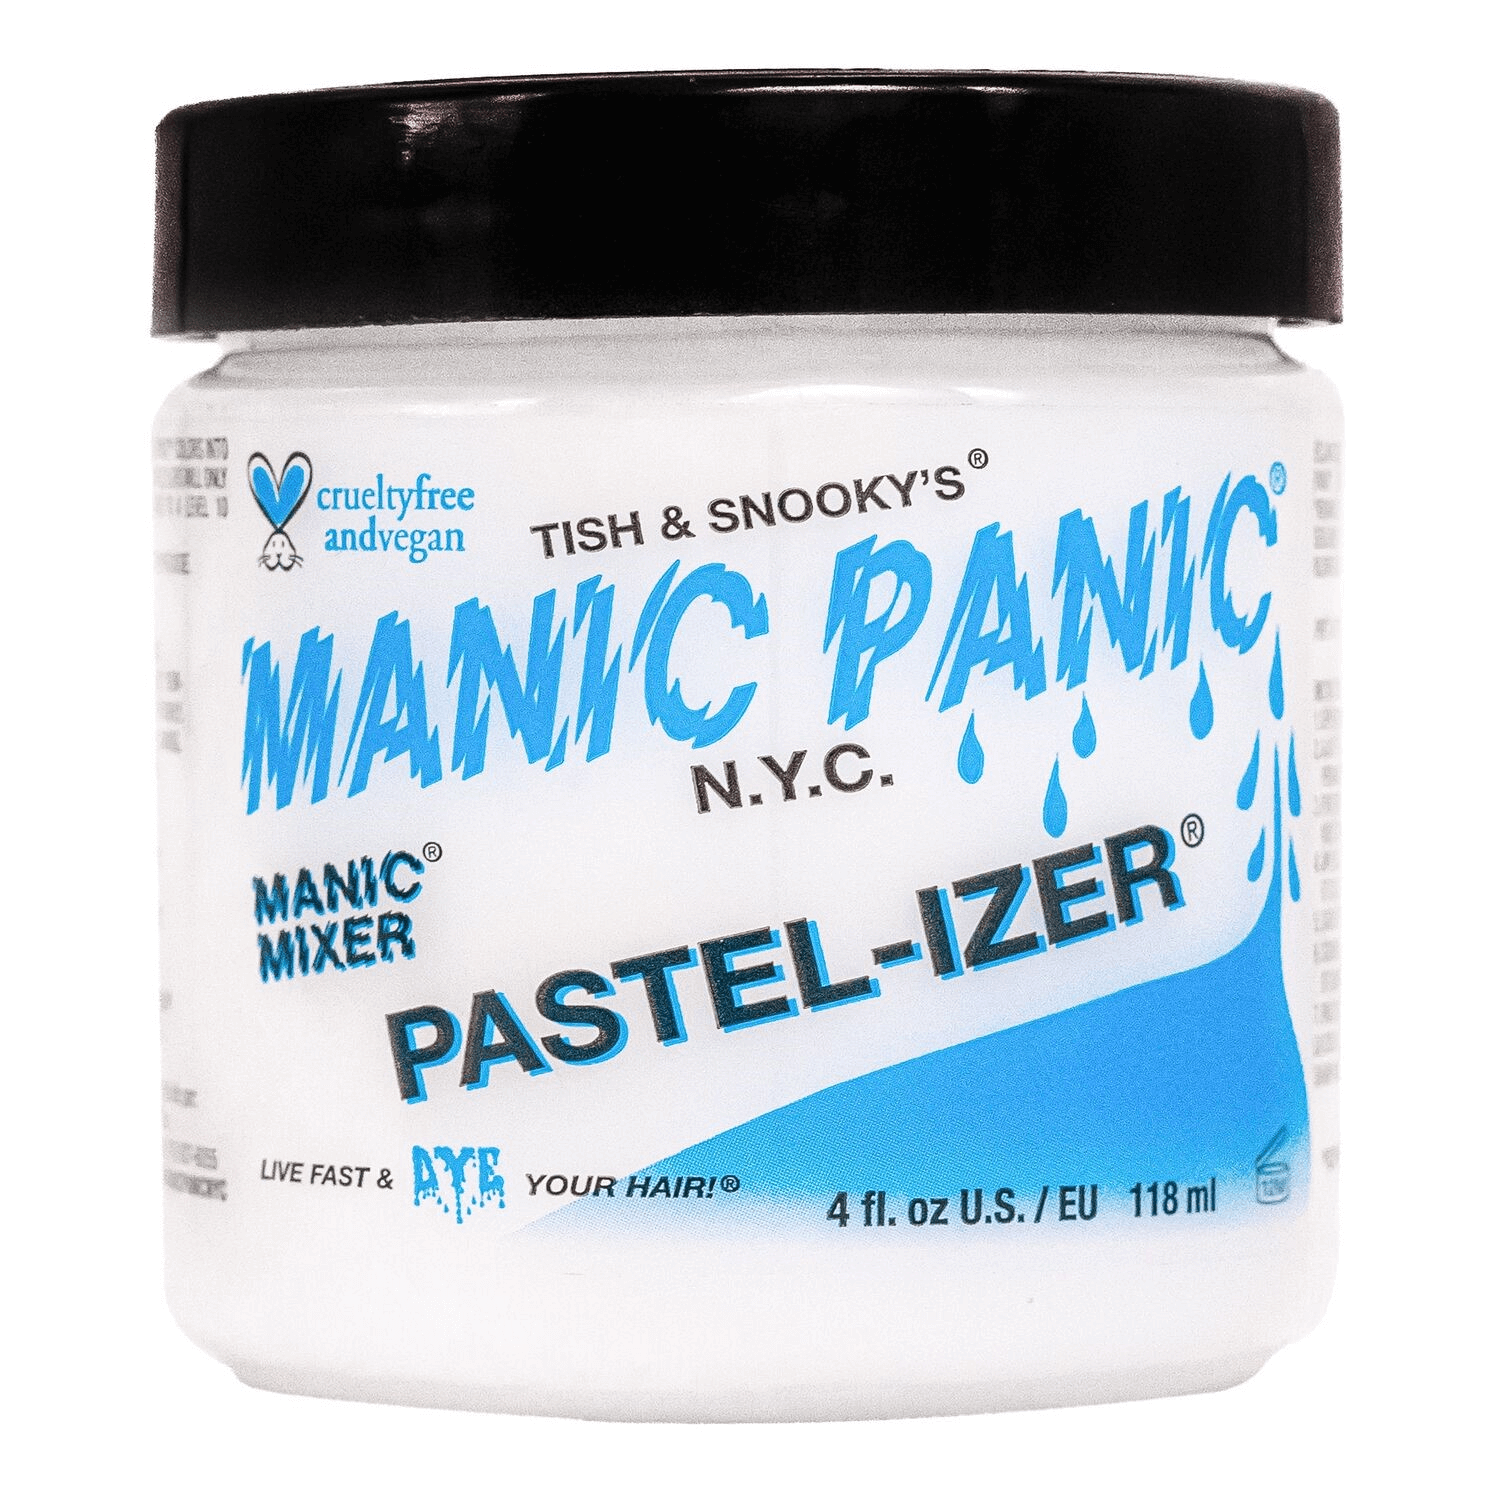 Sally Beauty coupon: Pastel-izer Manic Mixer & Hair Dye Medium